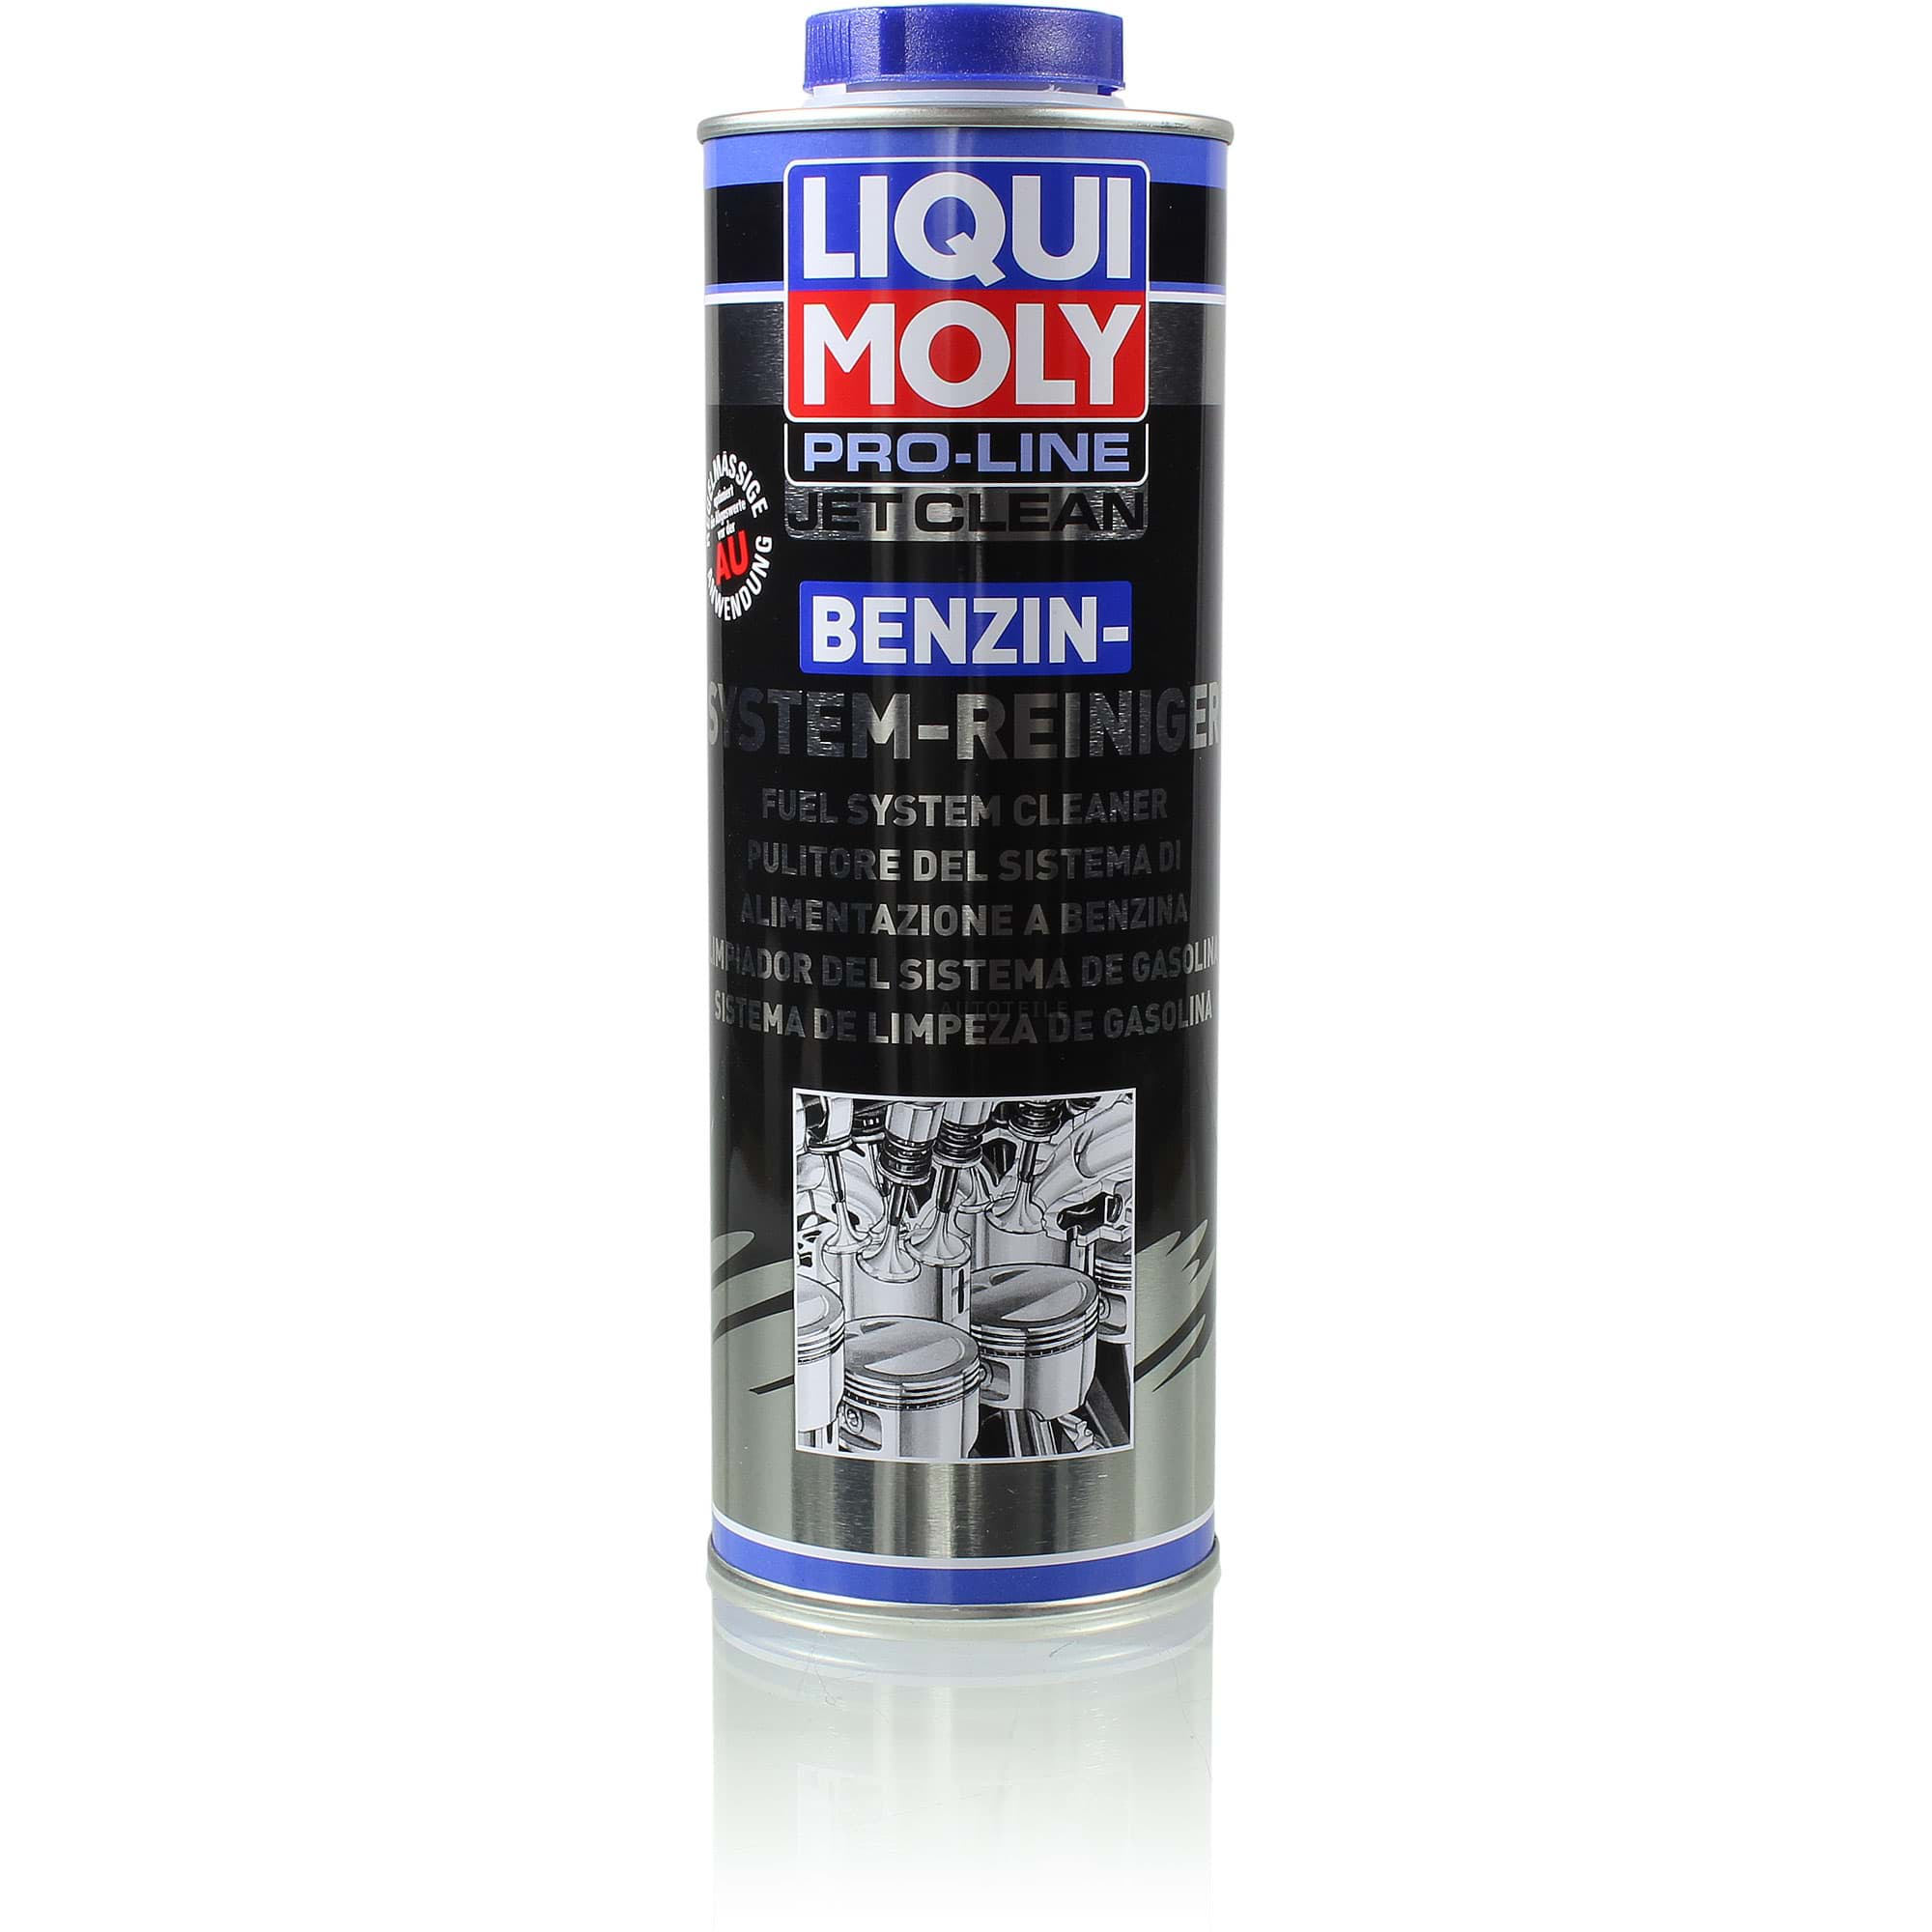 liqui moly 5147 pro line jetclean benzin system reiniger dose blech 1l autoteile f r pkw und. Black Bedroom Furniture Sets. Home Design Ideas